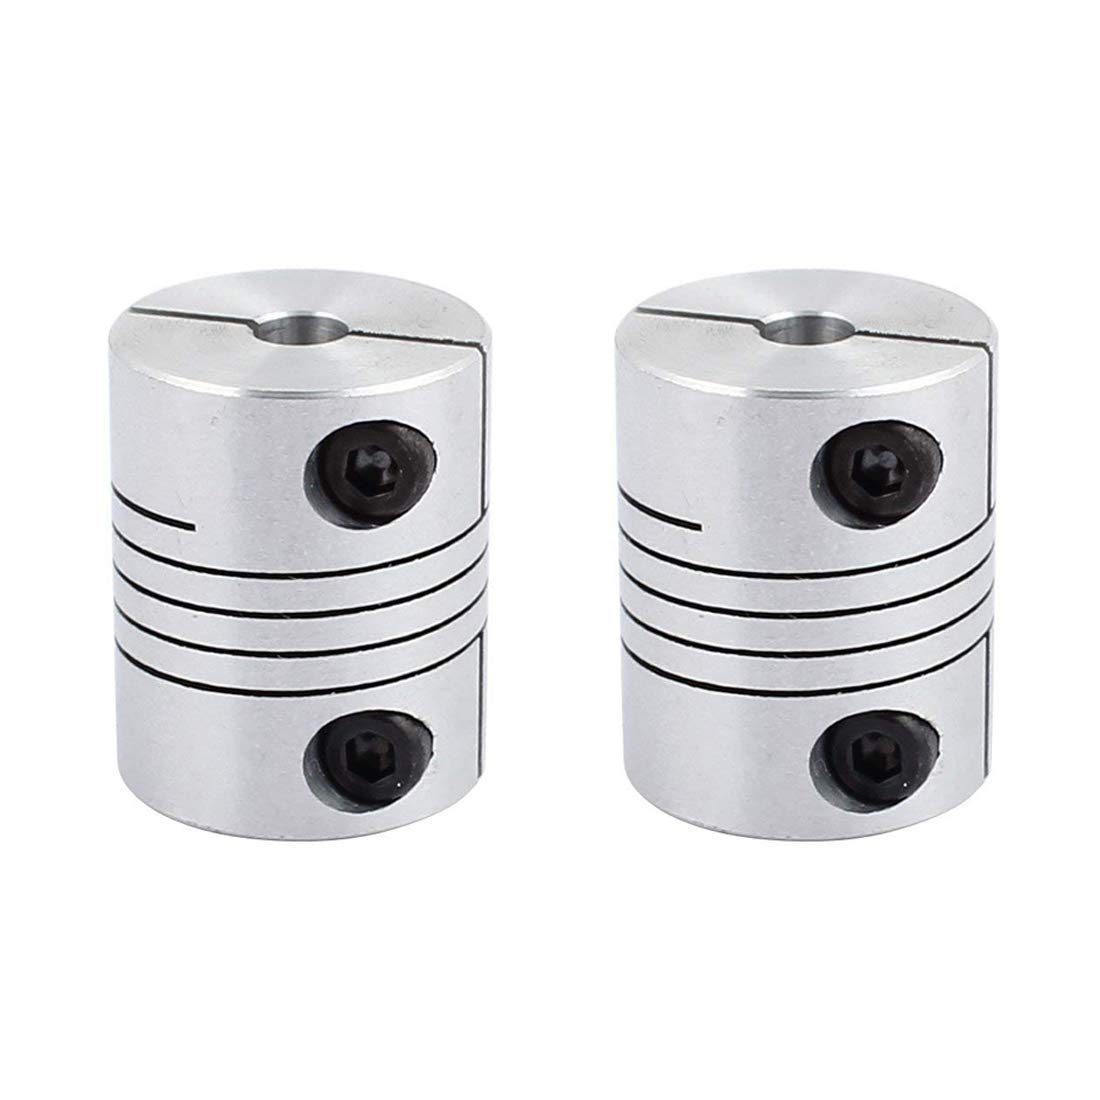 DIY Encoder Sydien 2pcs 5mm to 8mm Joint Helical Beam Coupler Coupling Aluminum Alloy Flexible Coupling Connector for 3D Printer CNC Machine